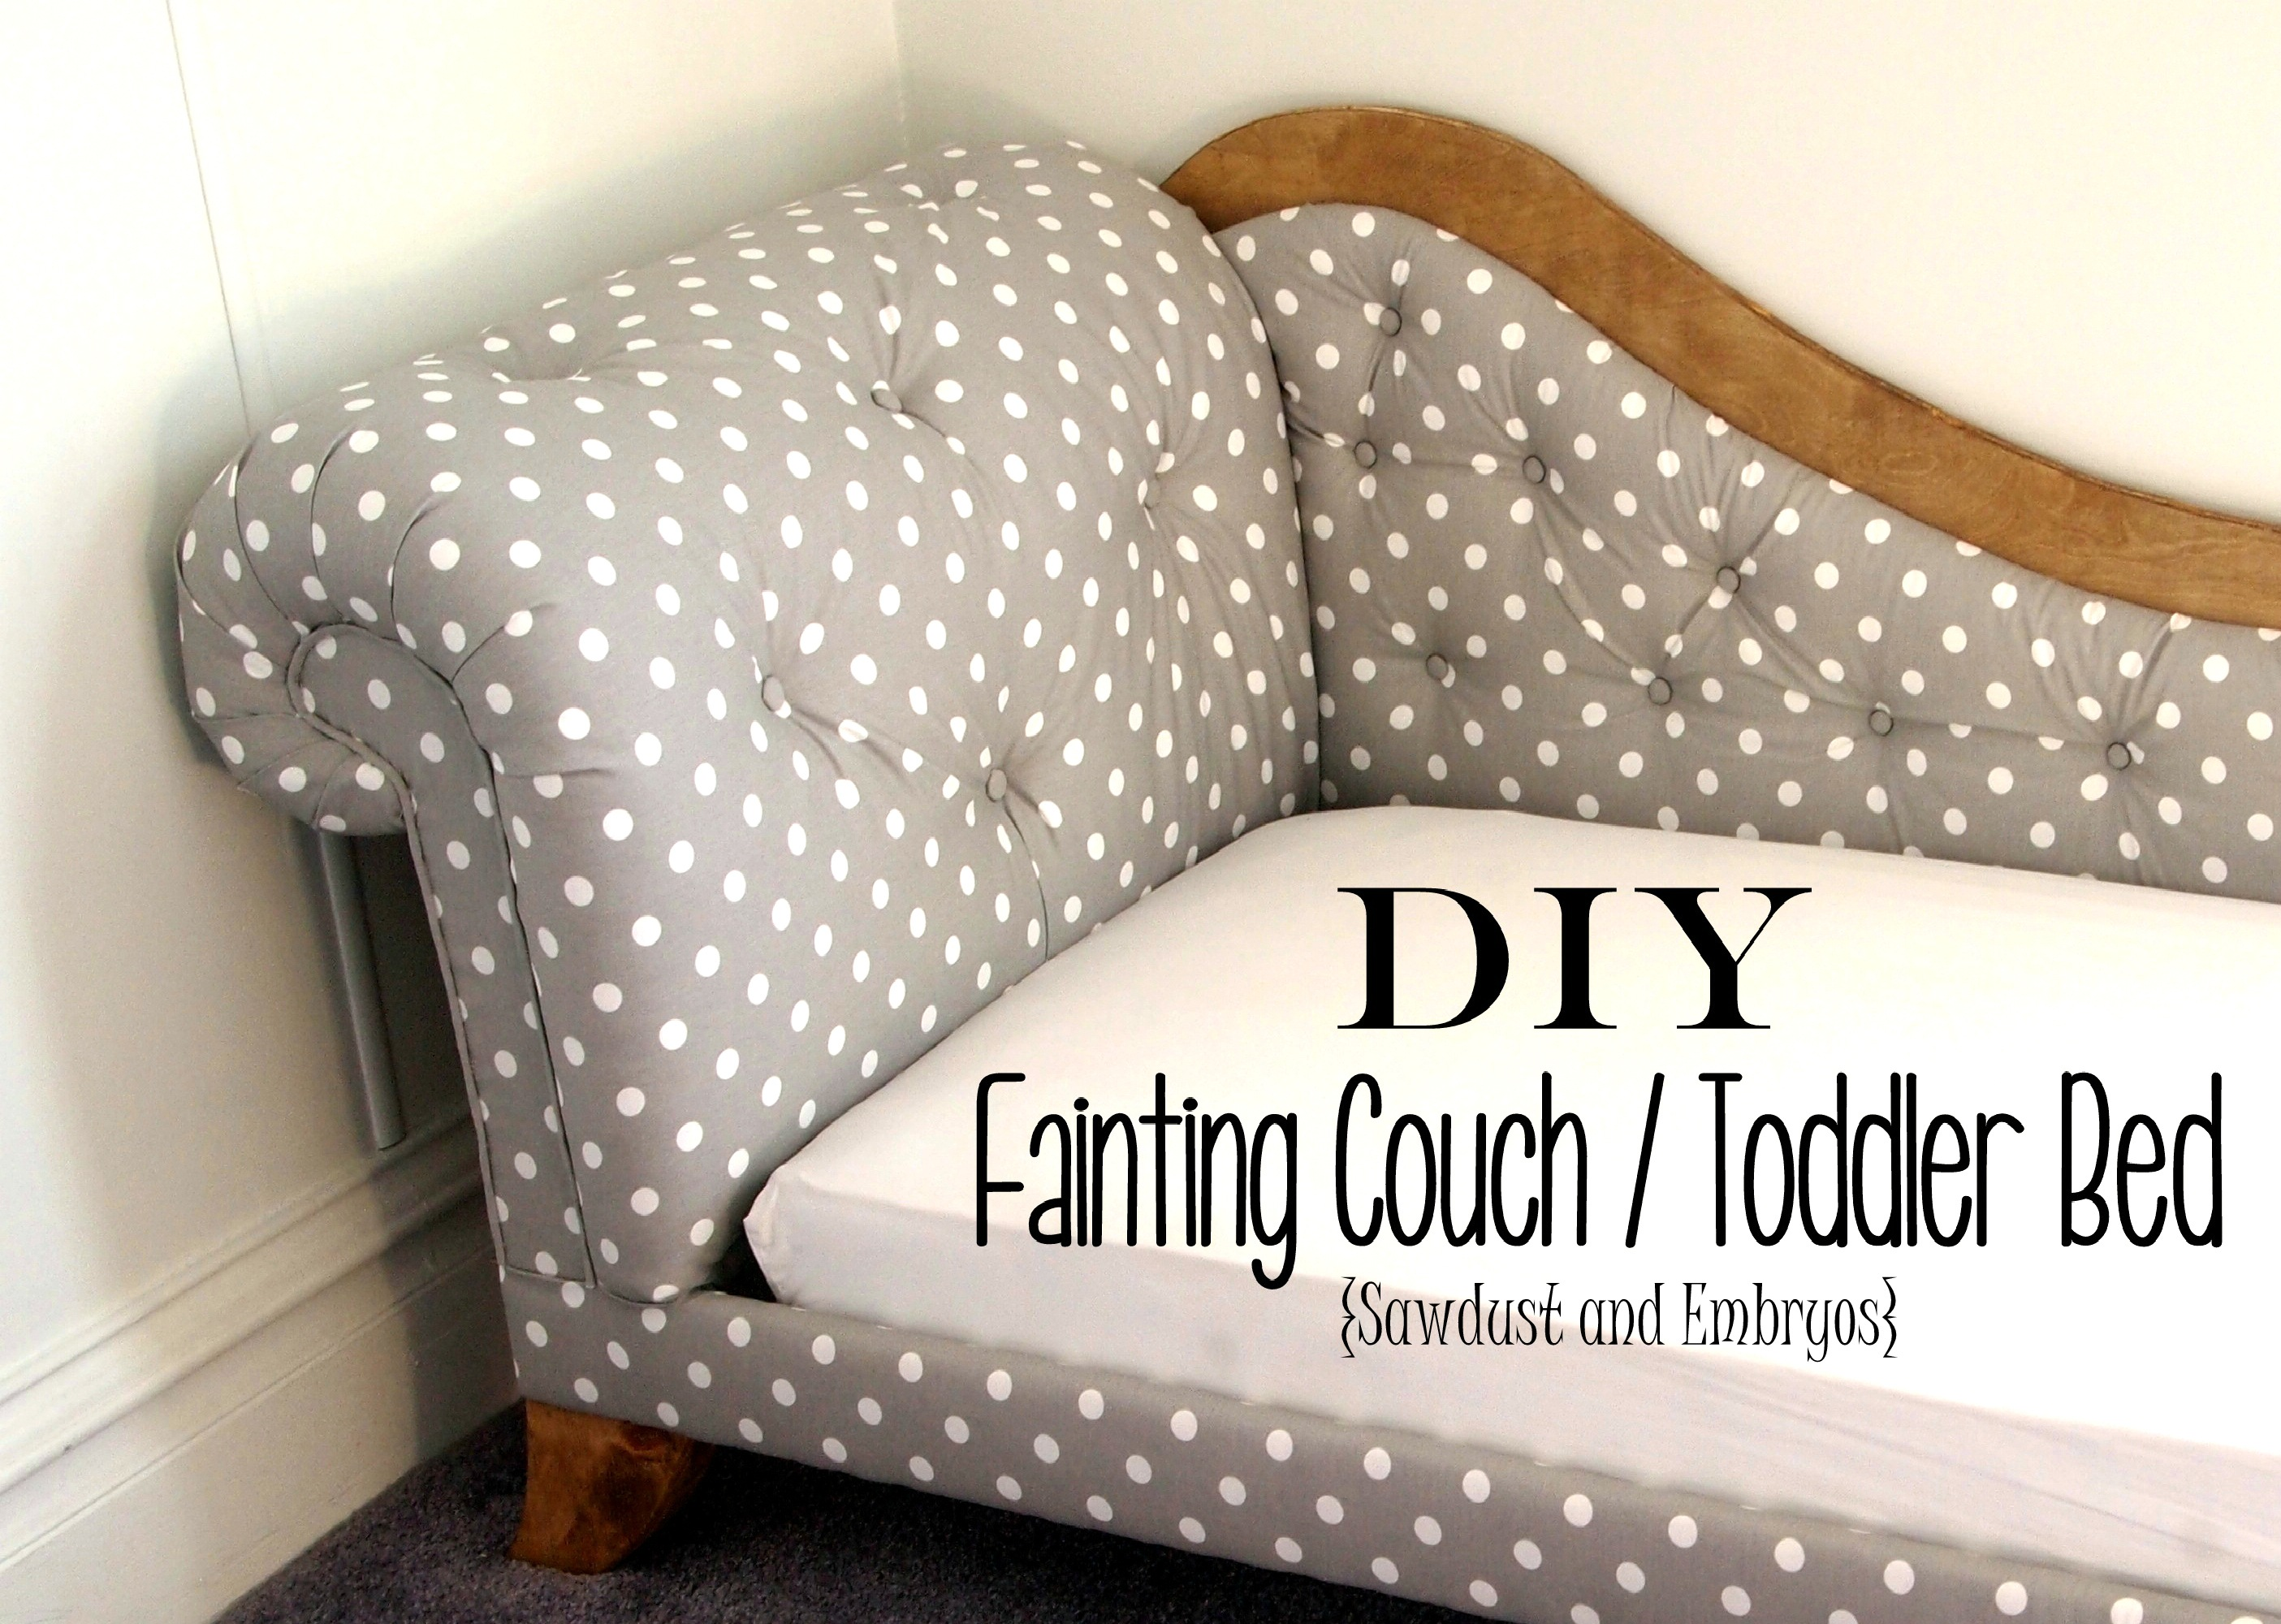 how to make a fainting couch